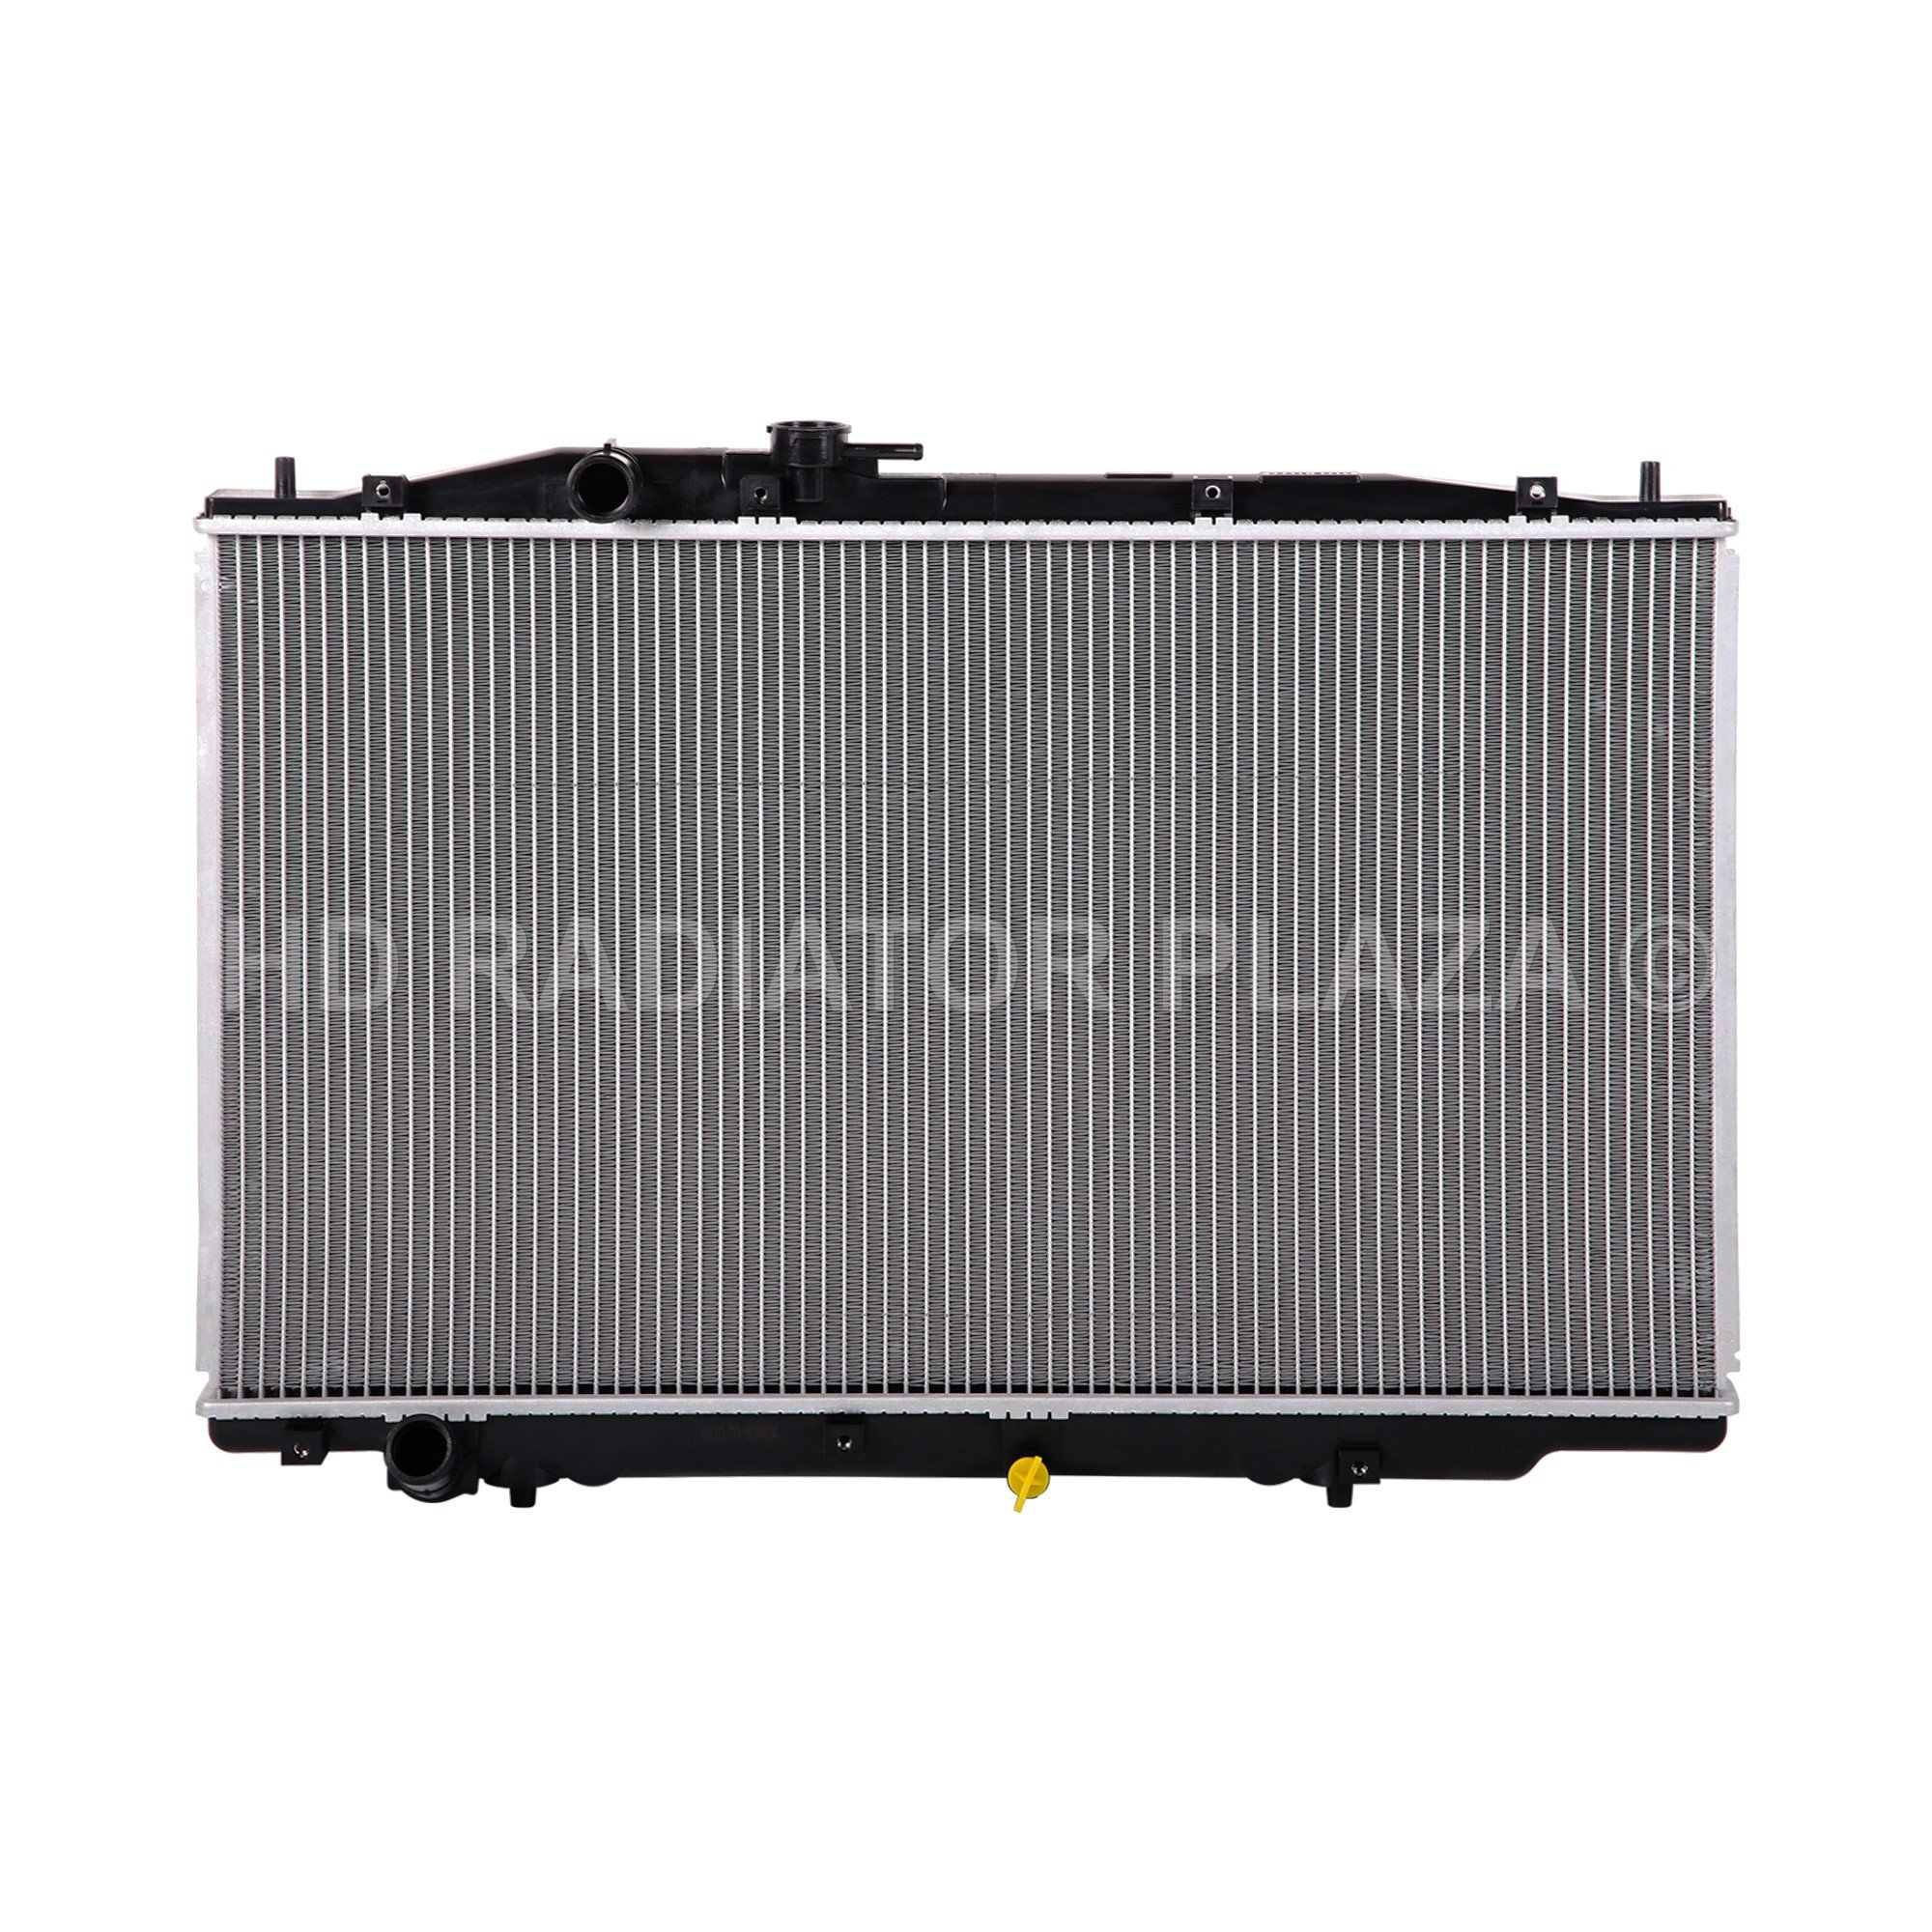 Radiator for 2004-2006 Acura TL 3.2L V6